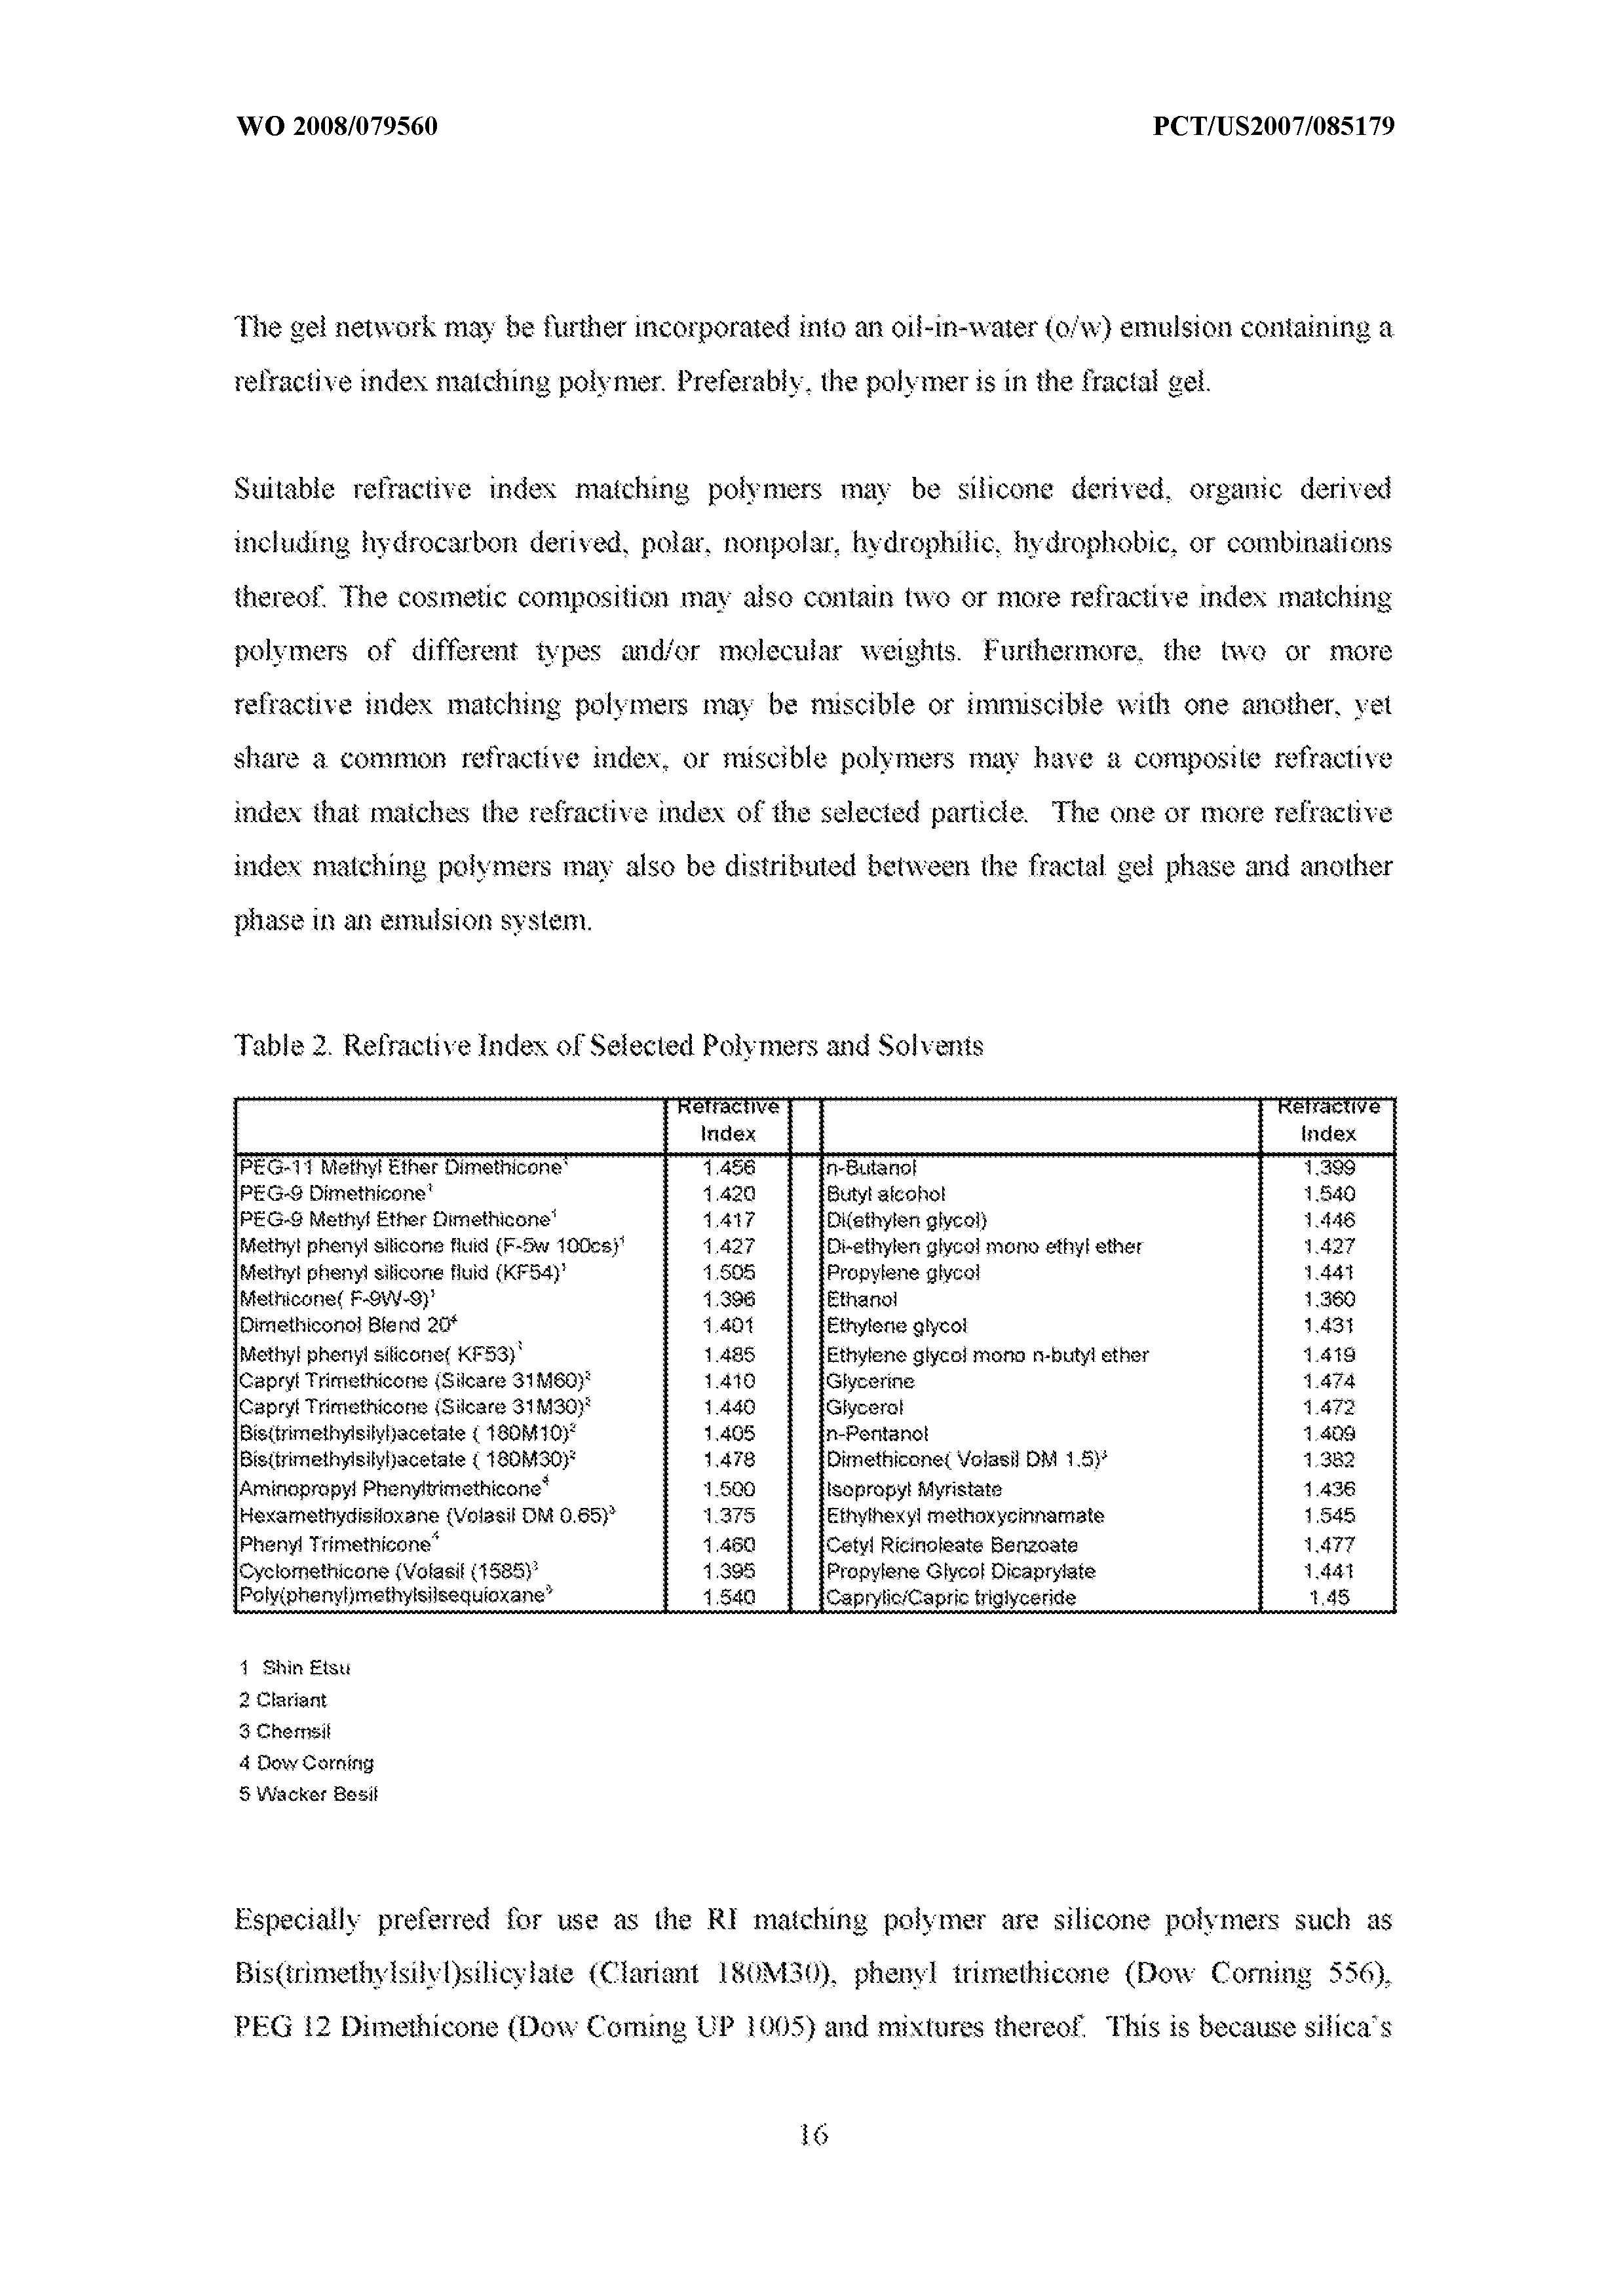 WO 2008/079560 A2 - Cosmetic Composition Containing Novel Fractal